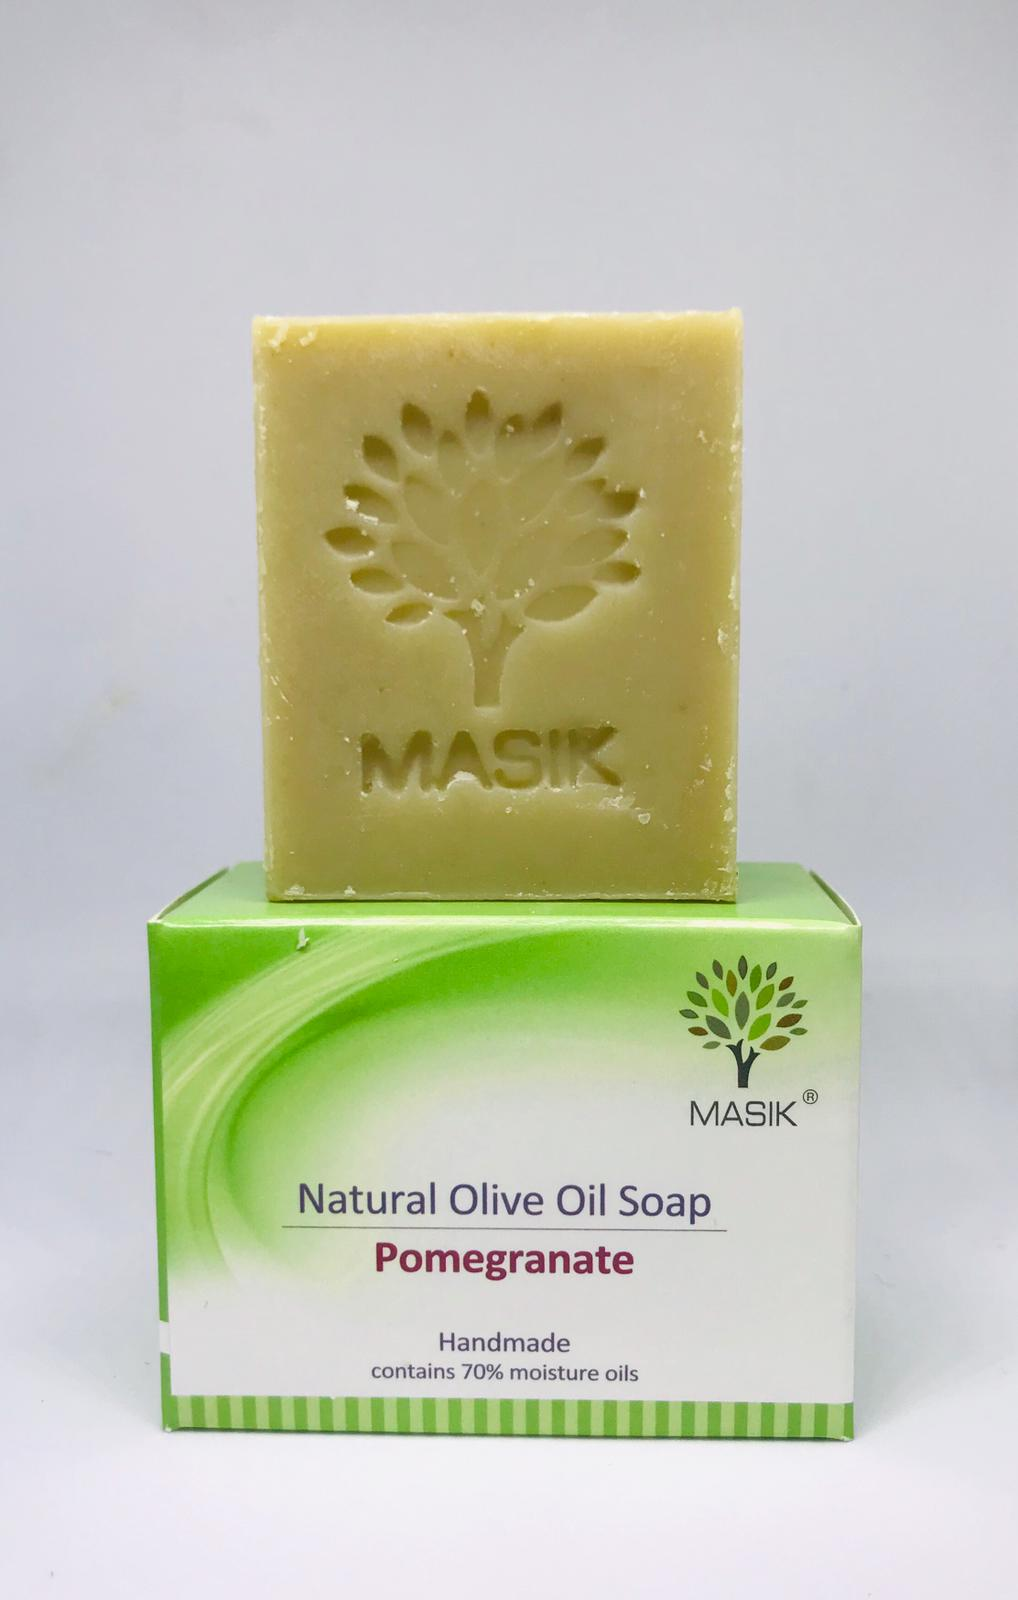 NATURAL Pomegranate Soap with olive oil & essential oils -MASIK